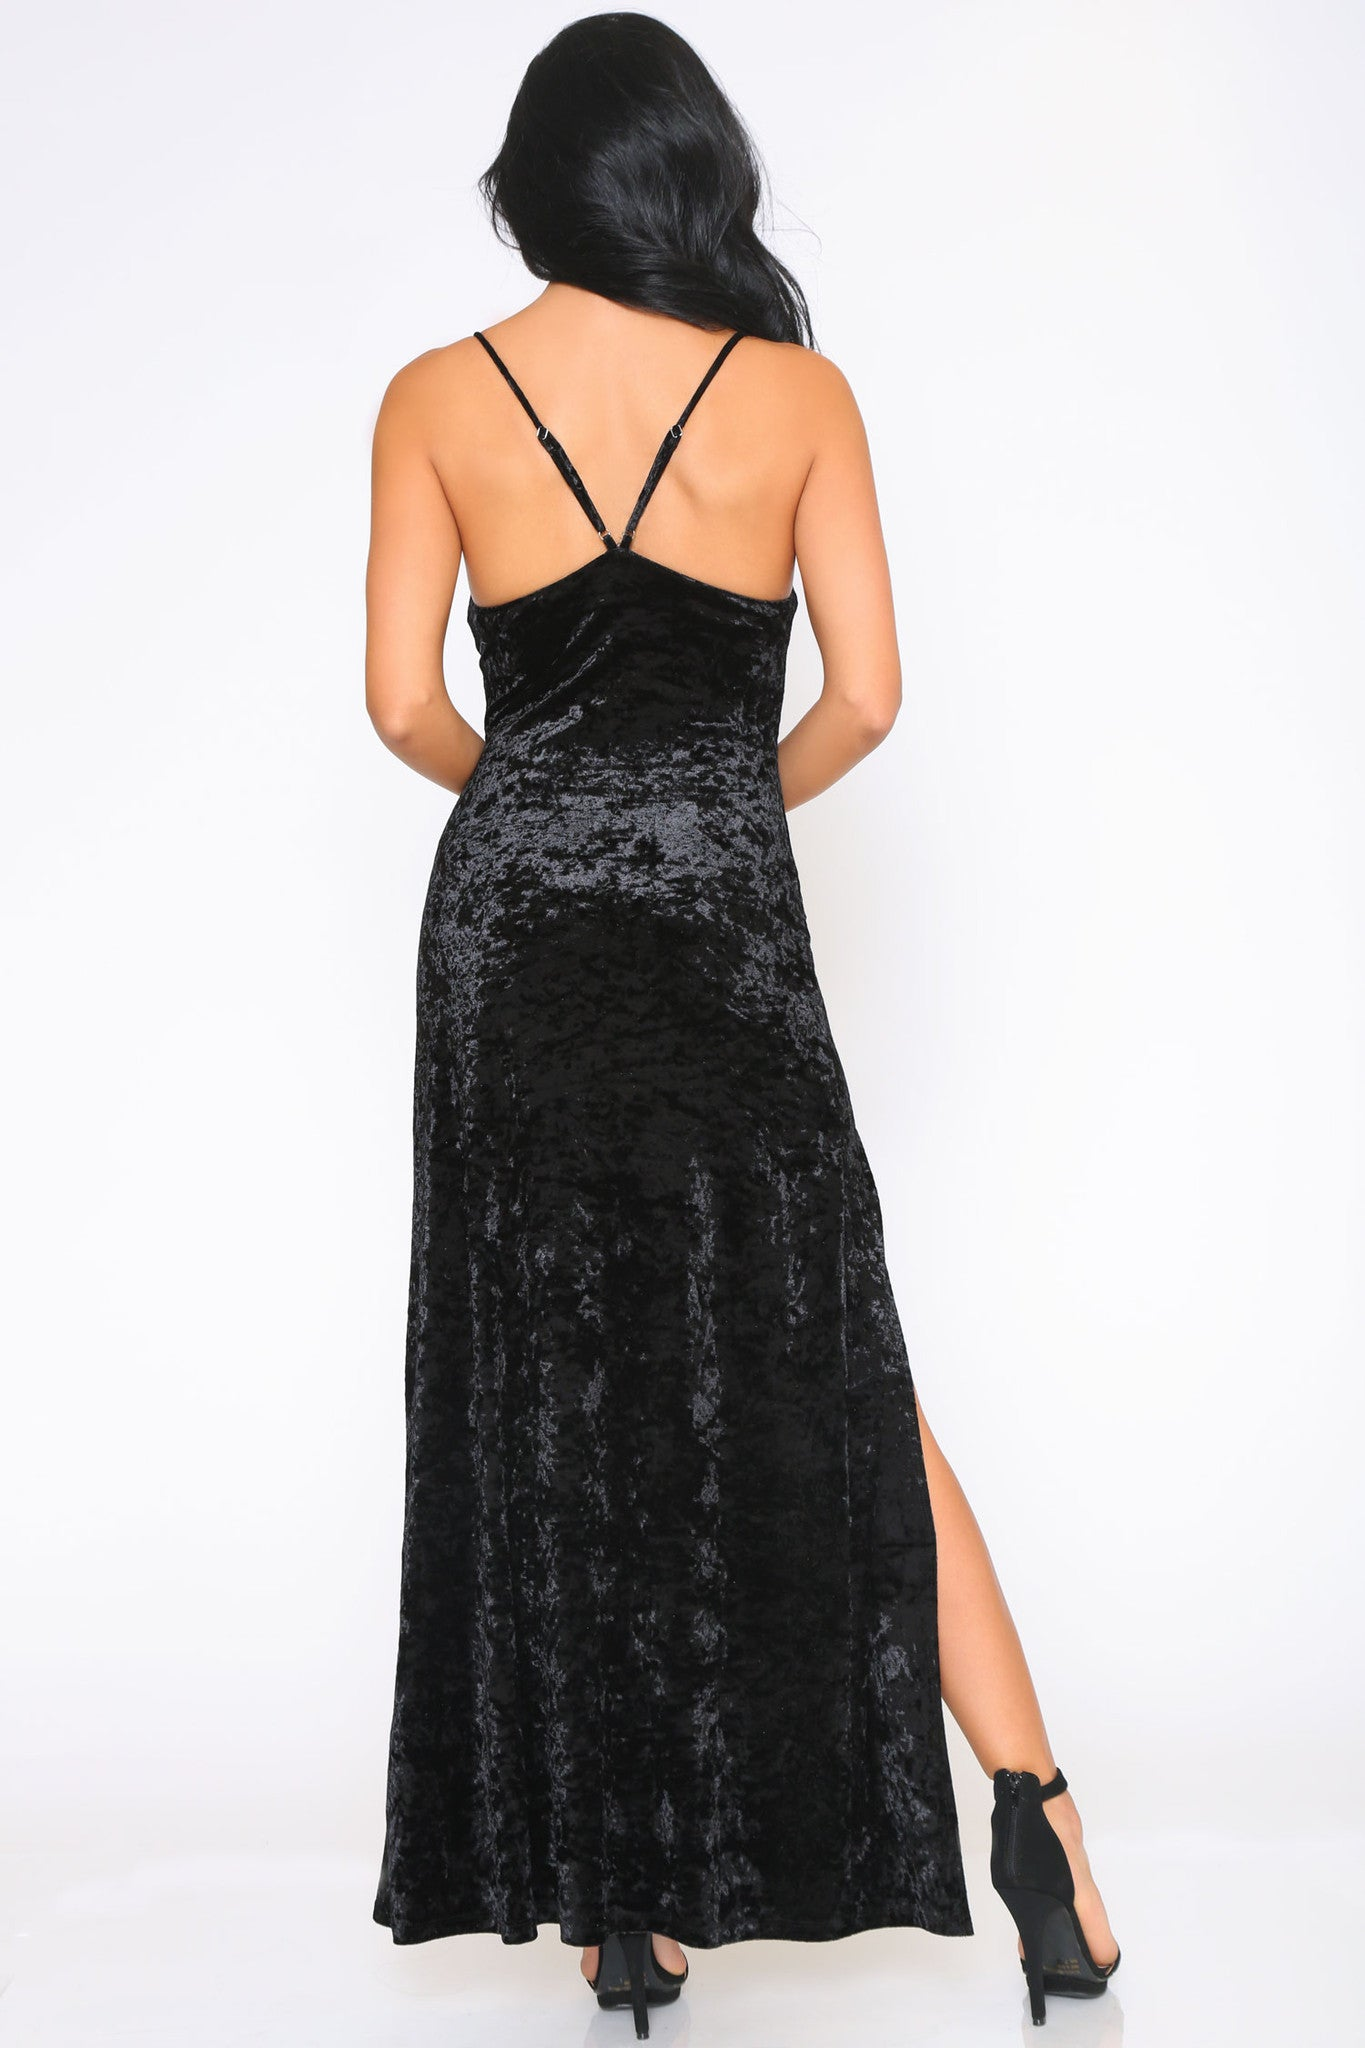 KARISSA DRESS - Glam Envy - 3